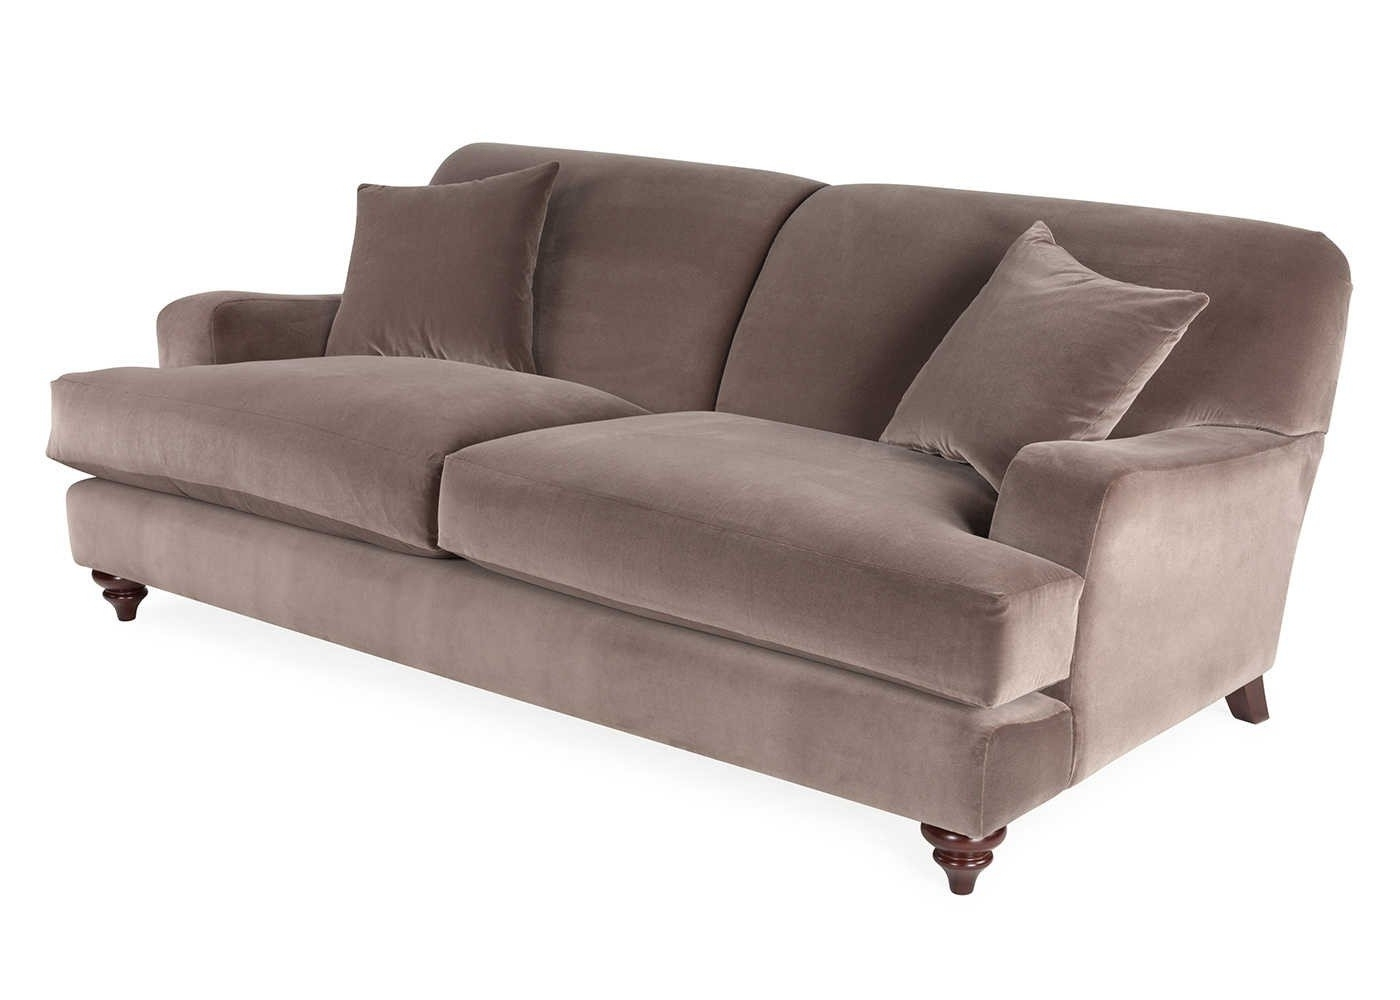 4 Seater Sofas Throughout Preferred Heal's Hampstead 4 Seater Sofa (Gallery 18 of 20)